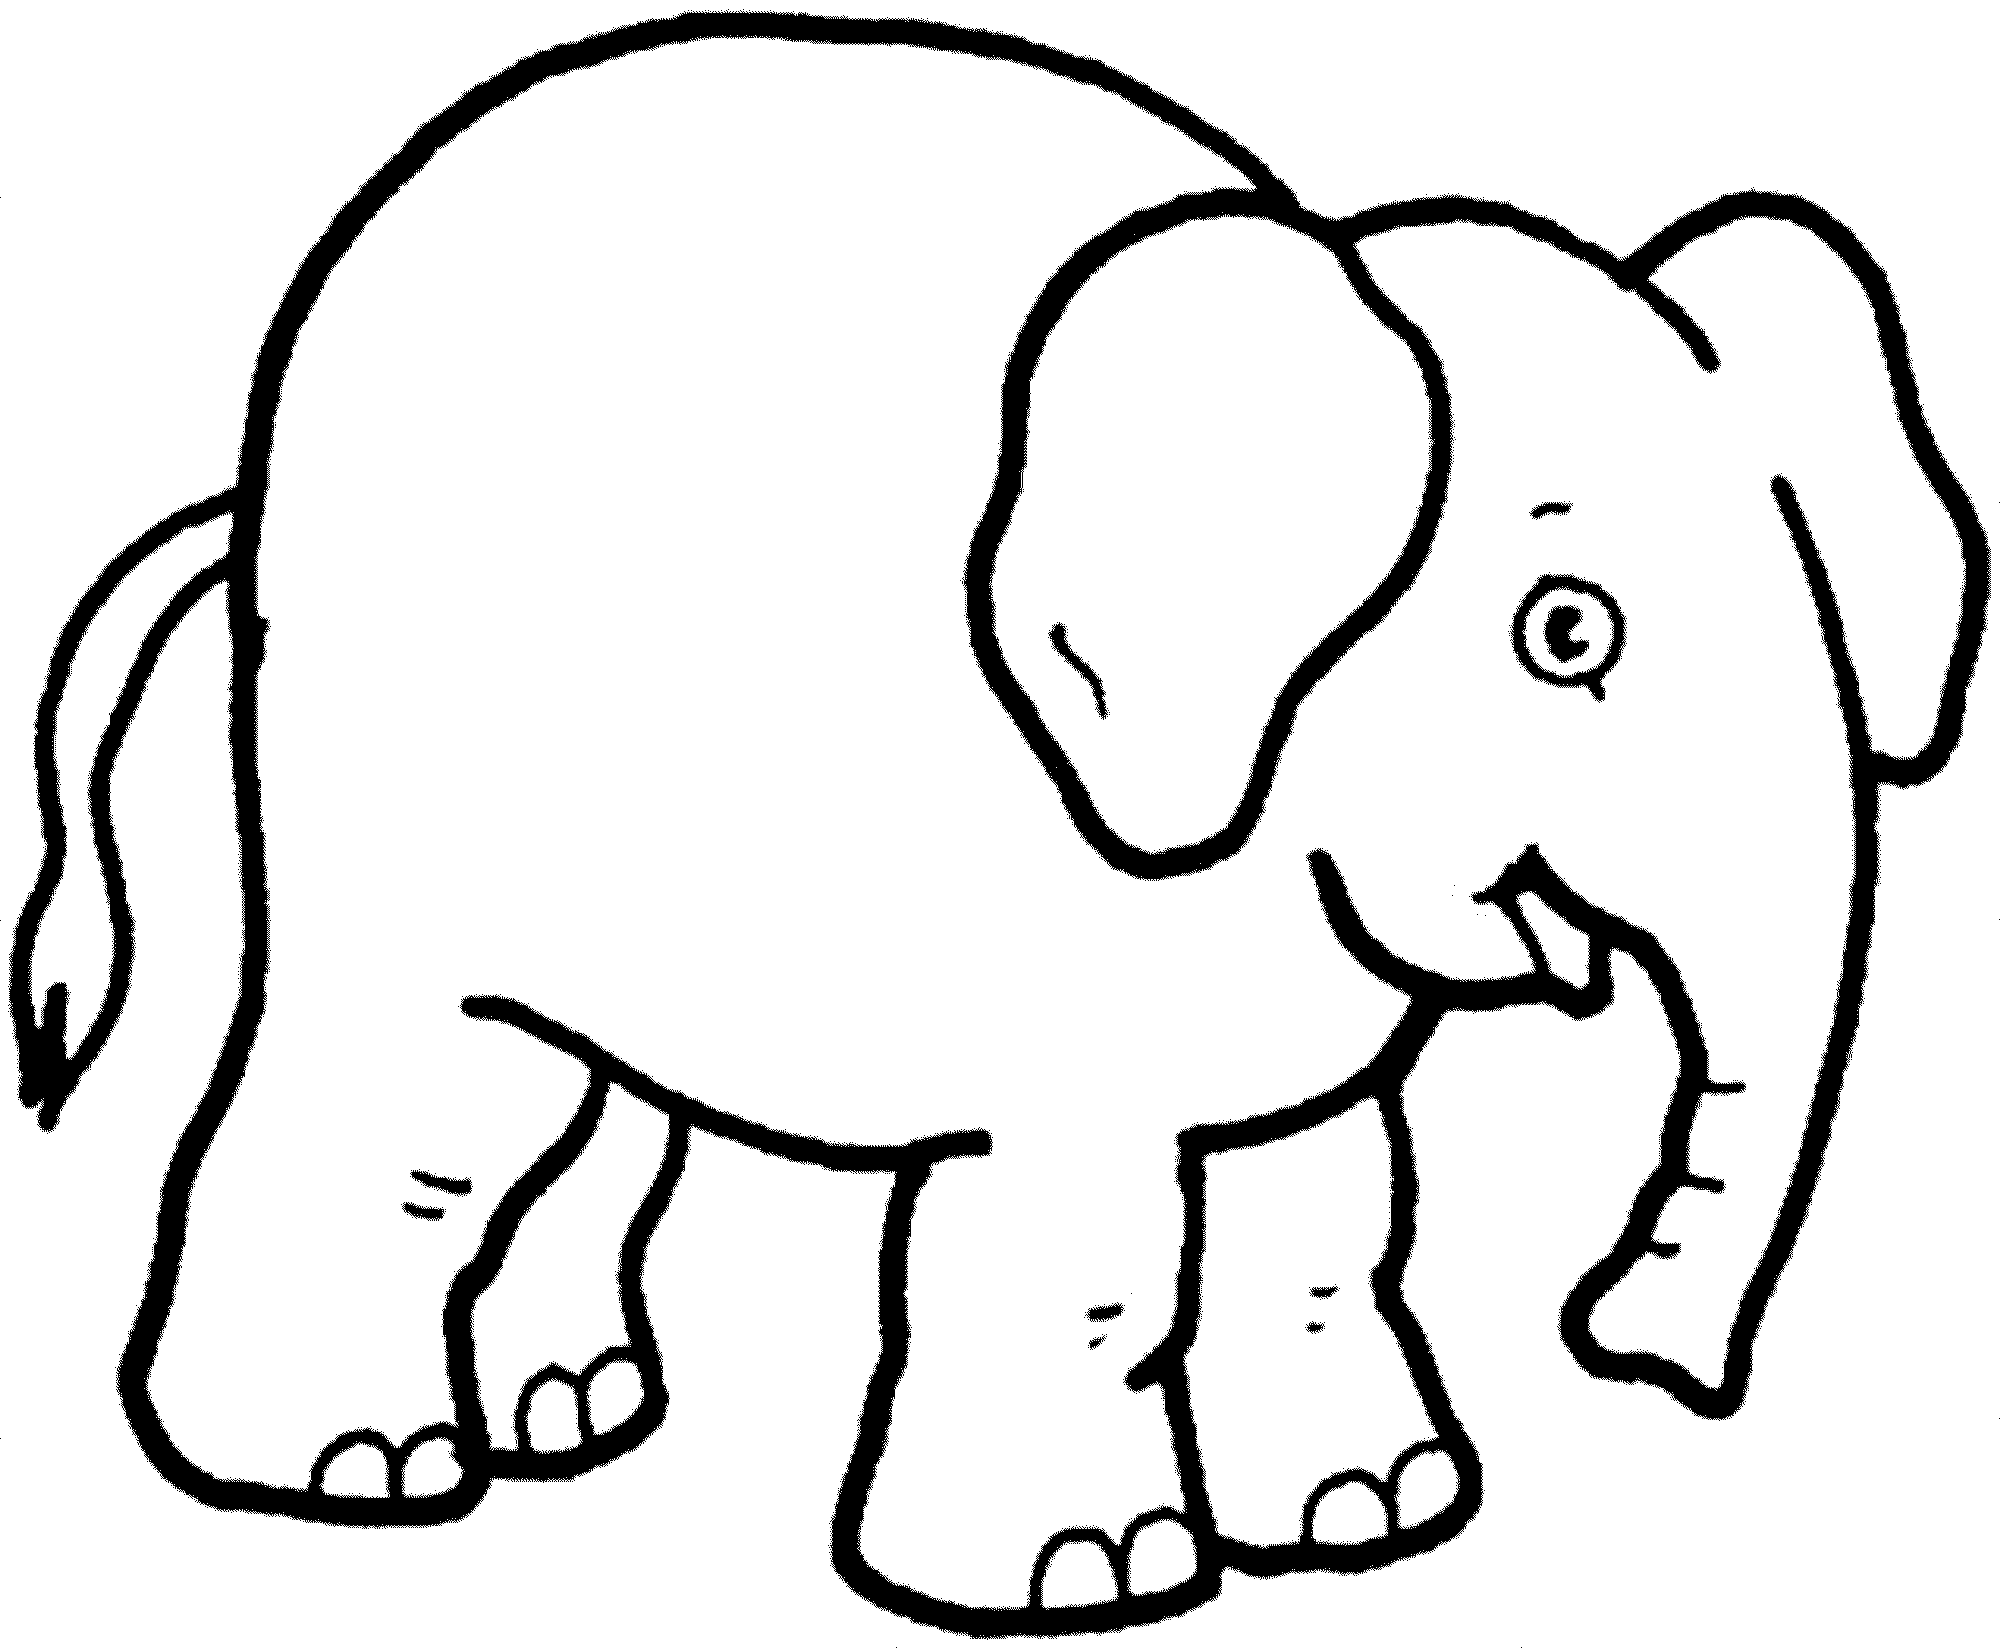 colouring pages of elephant print download teaching kids through elephant coloring elephant of colouring pages